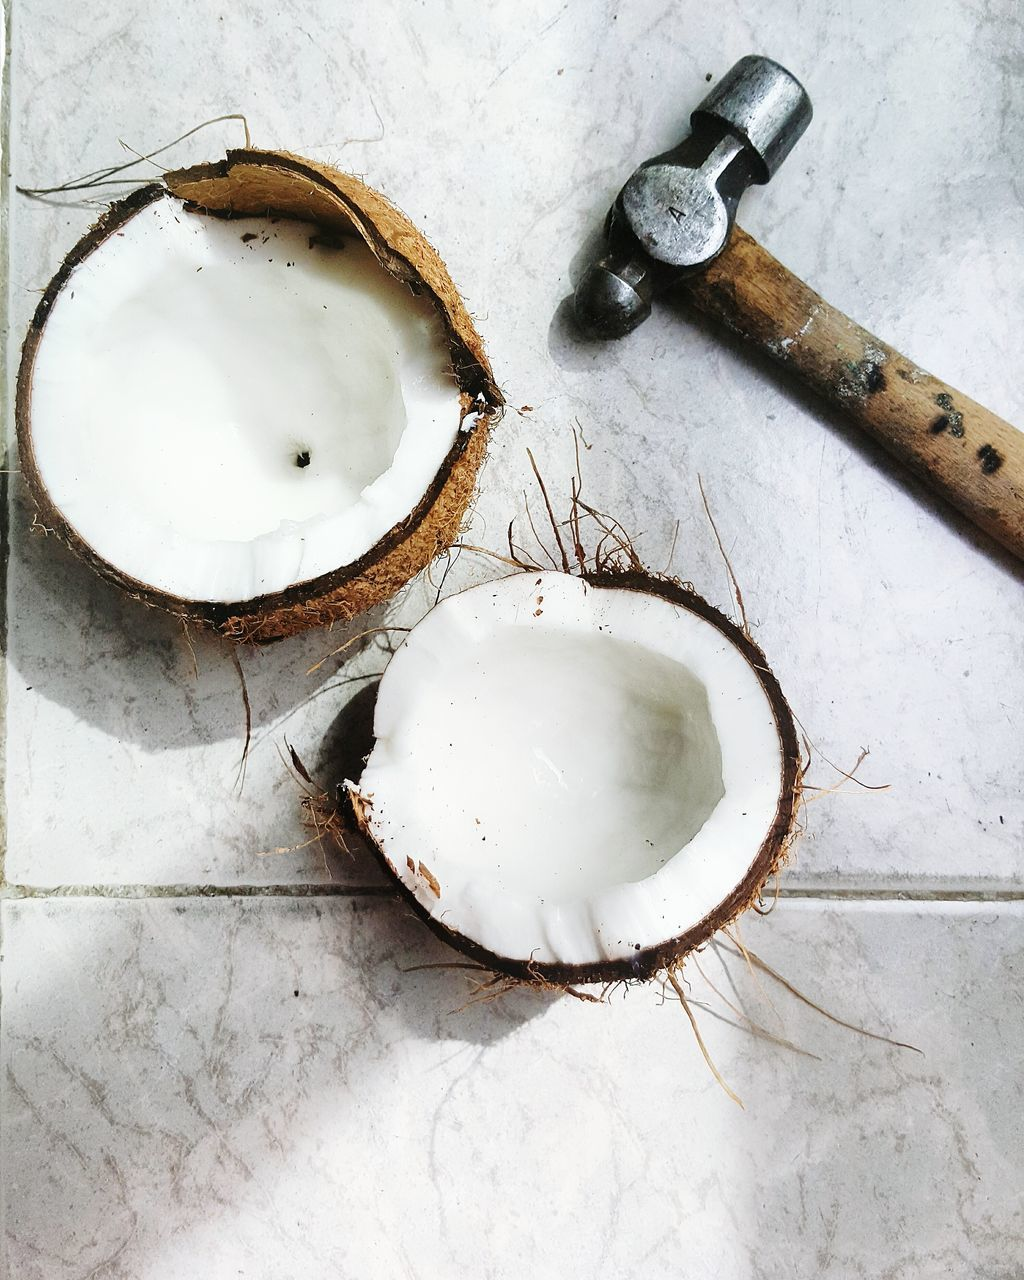 Directly Above View Of Coconut And Hammer On Tiled Floor At Home